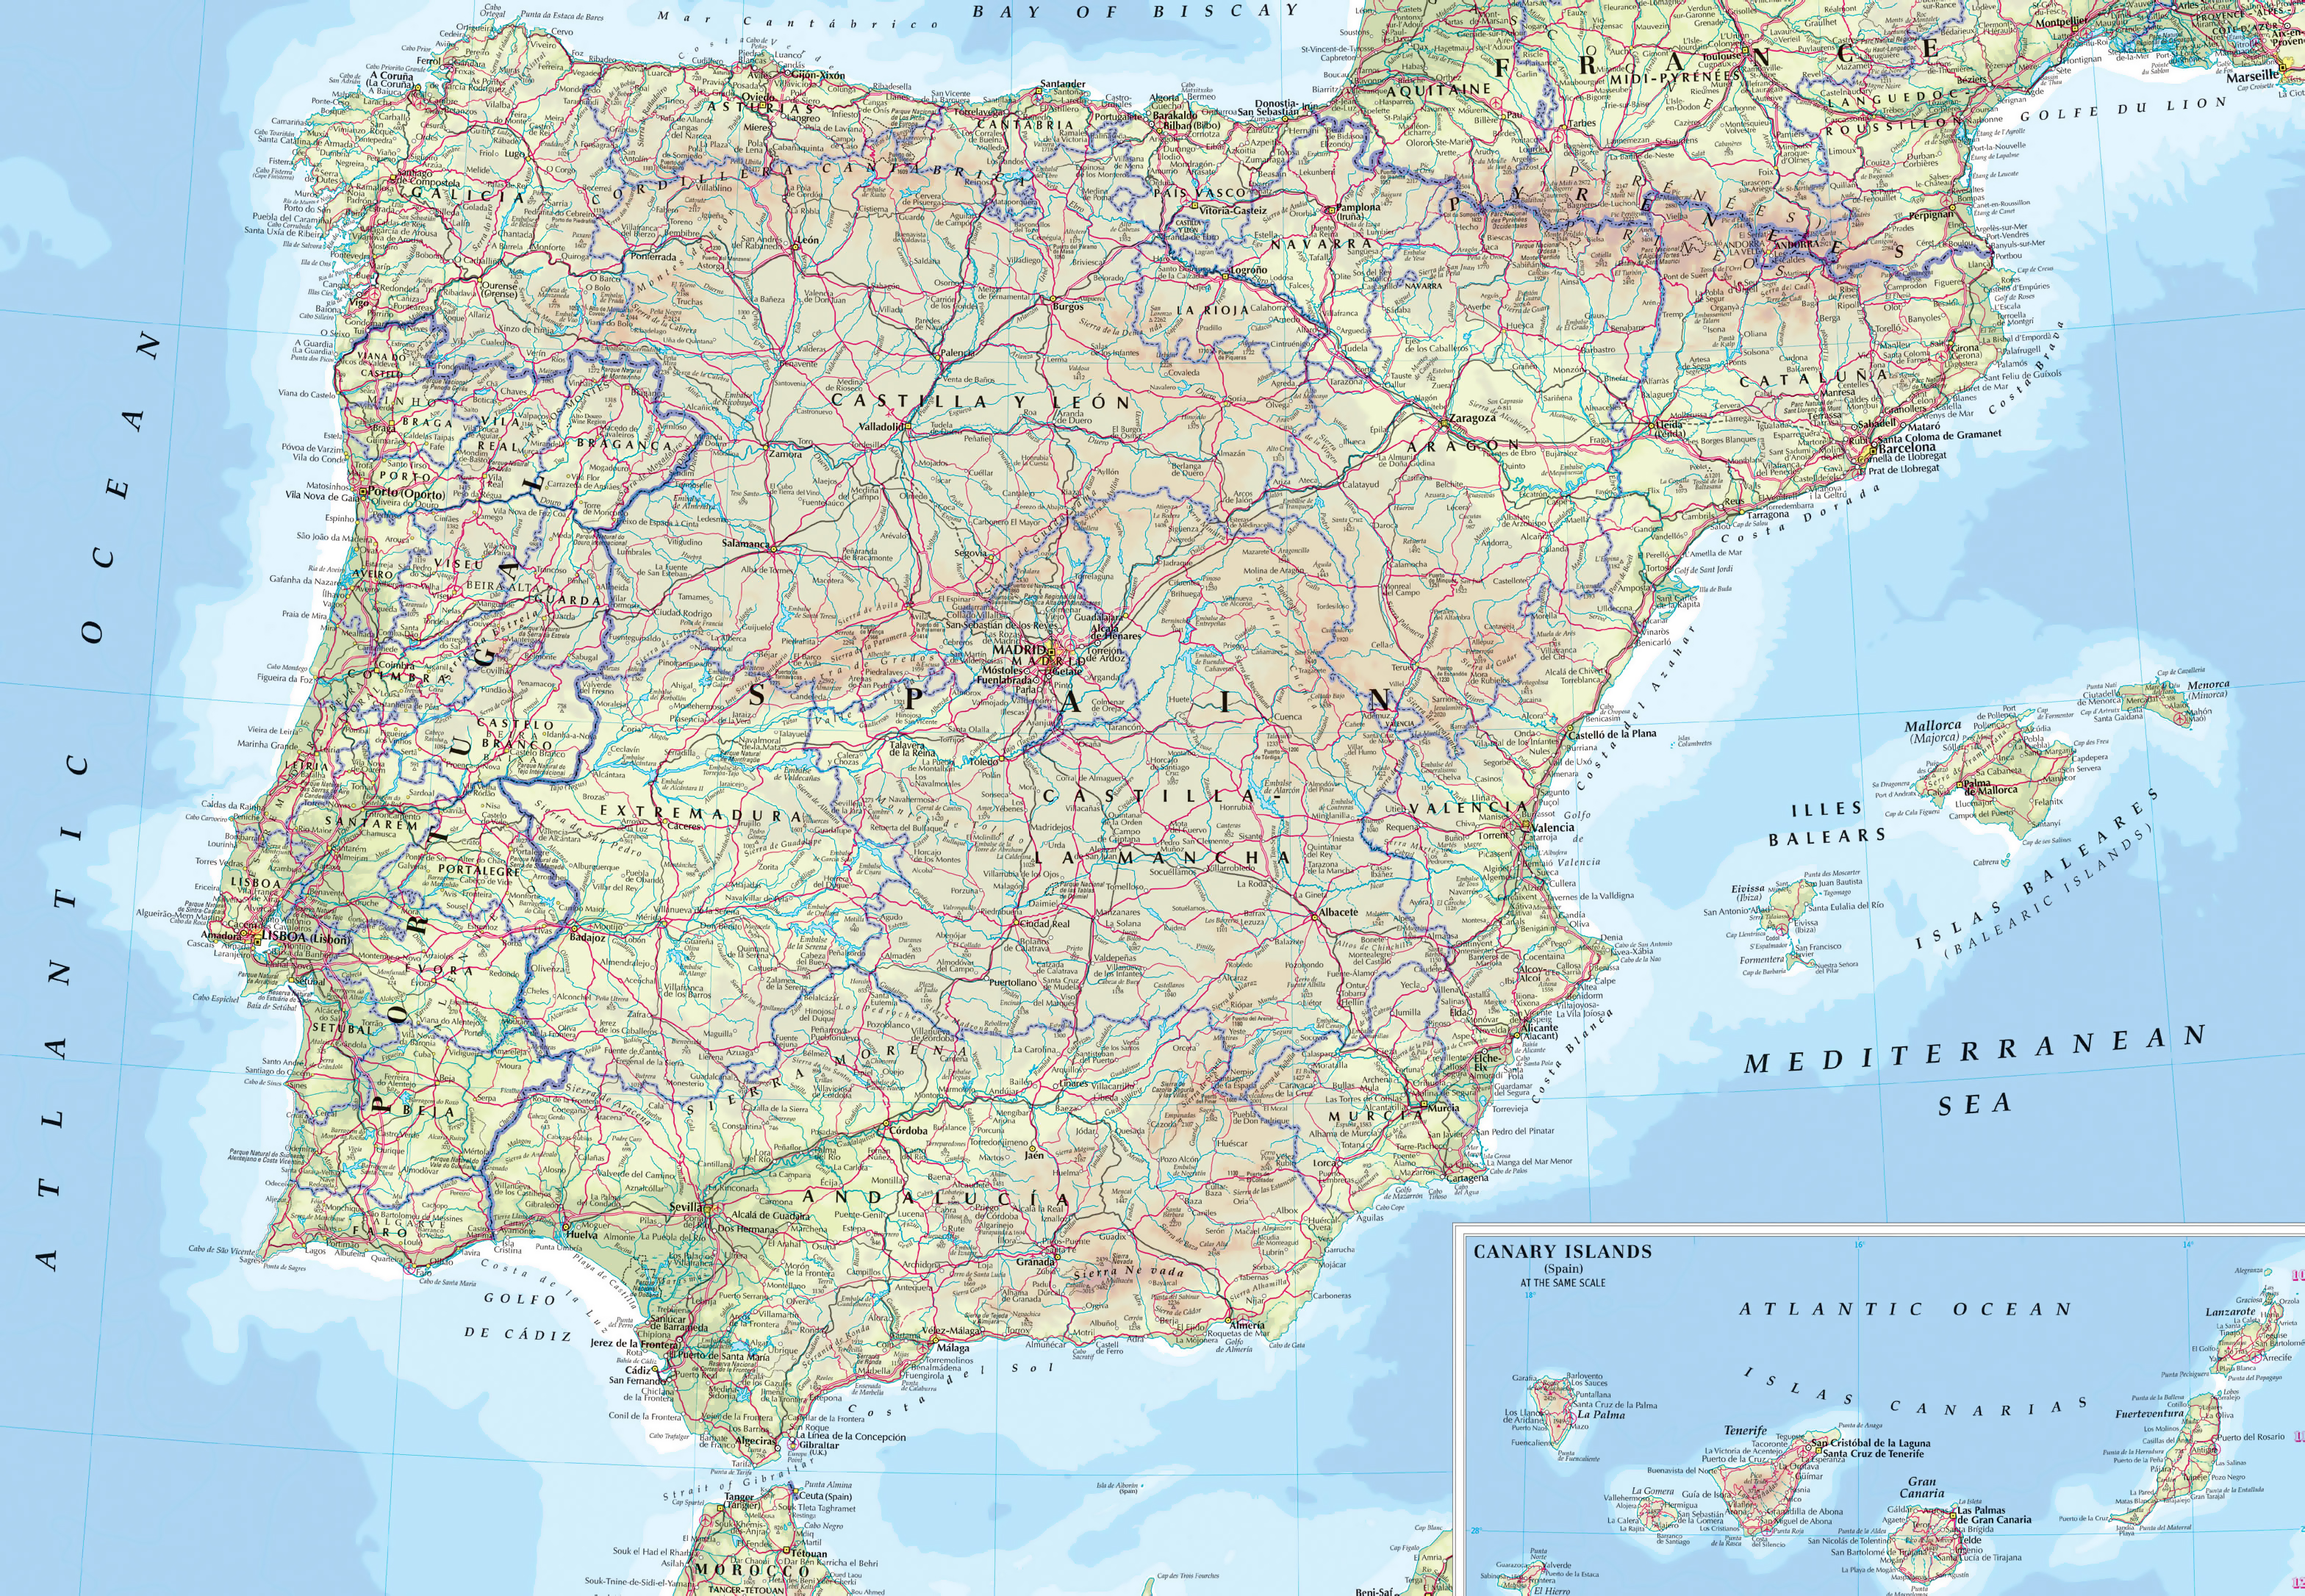 Large Road Map Of Spain And Portugal With Cities And Airports - Portugal map with airports